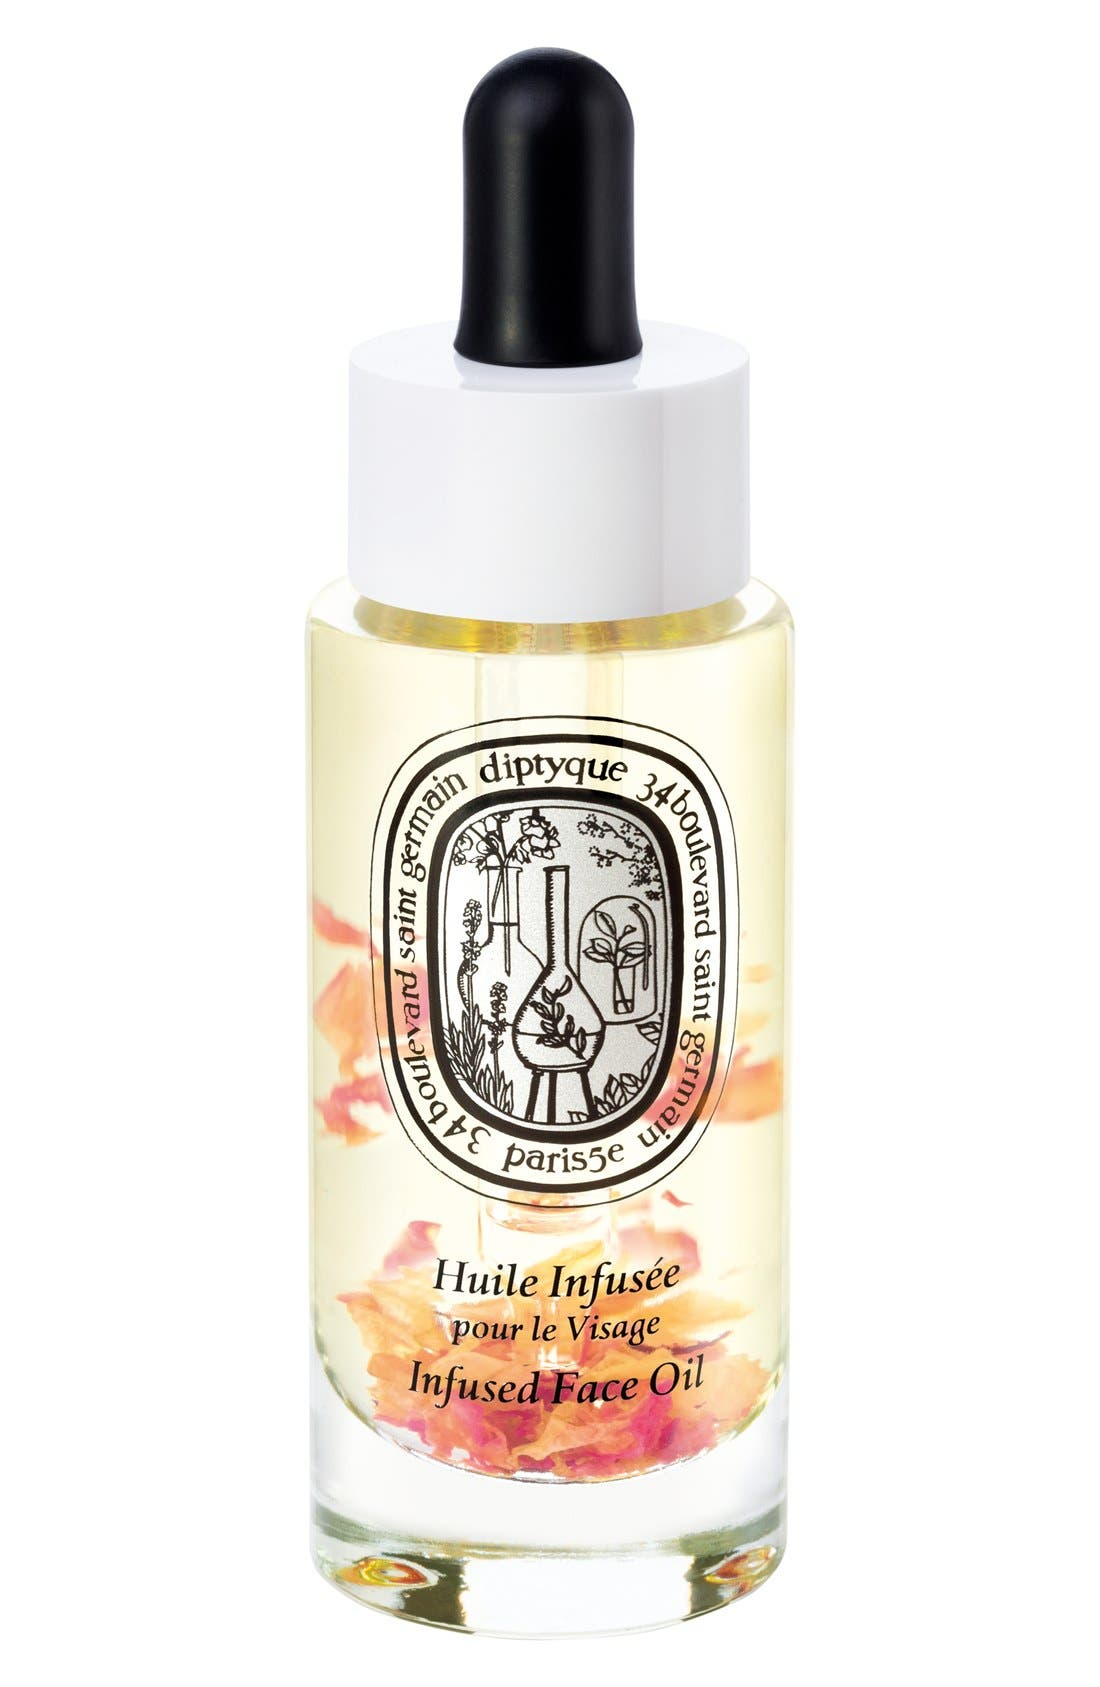 diptyque Infused Face Oil